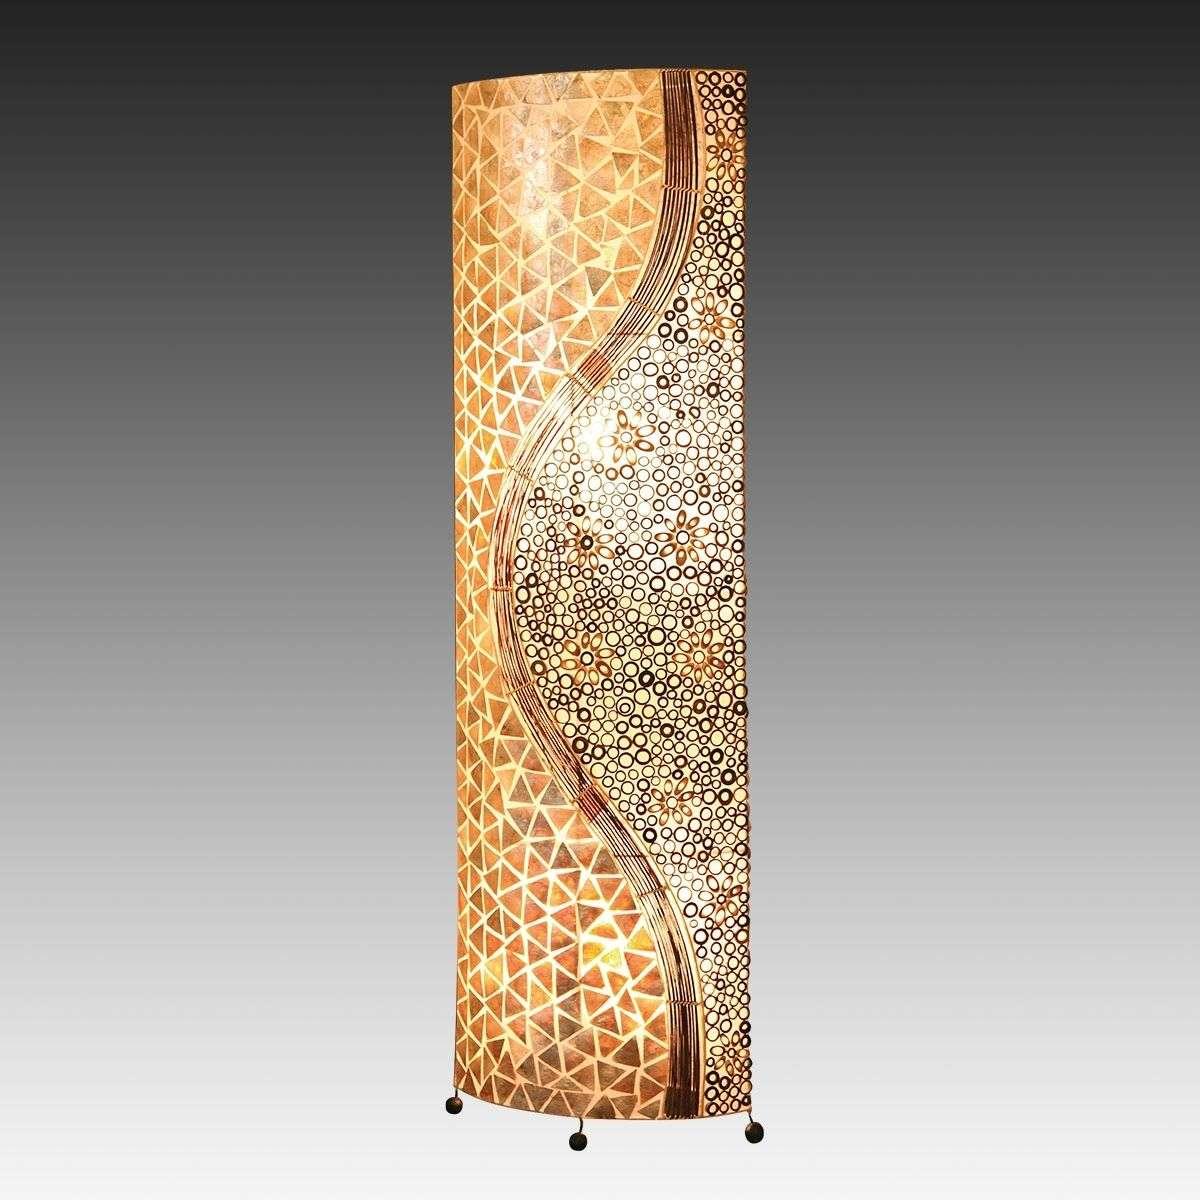 Bali Ethnic-look Oval Mother-of-Pearl Floor Lamp